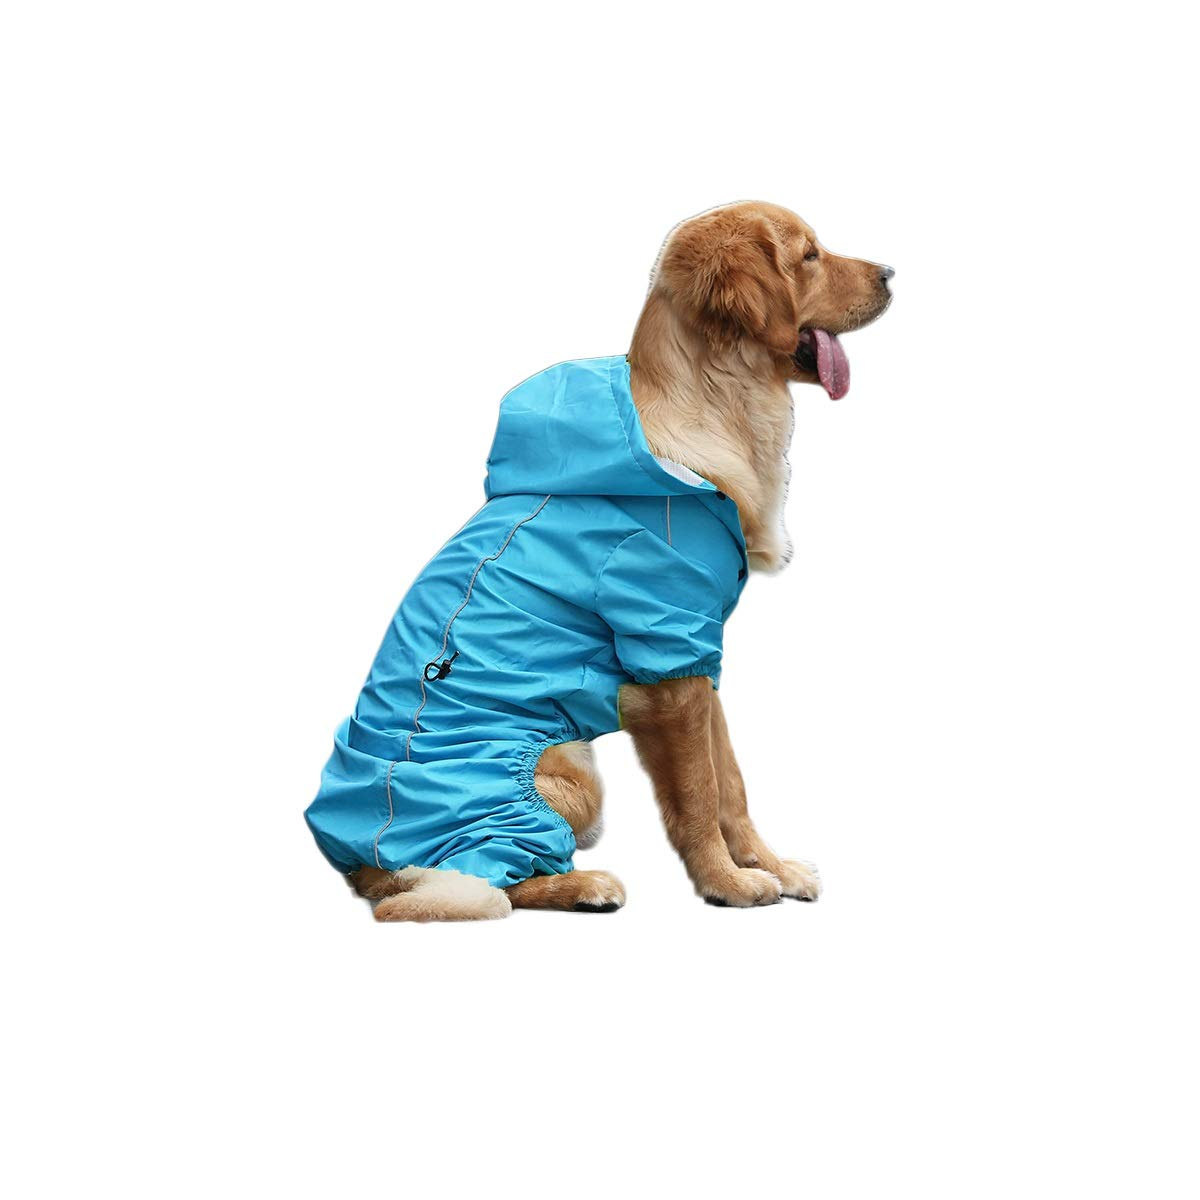 Sky bluee L Sky bluee L Qingbaotong Dog Raincoat Dog Clothes Medium Dog Large Dog Pet Supplies Fluorescent Green, Warm orange, Sky bluee, S M L XL XXL High Strength Waterproof (color   Sky bluee, Size   L)